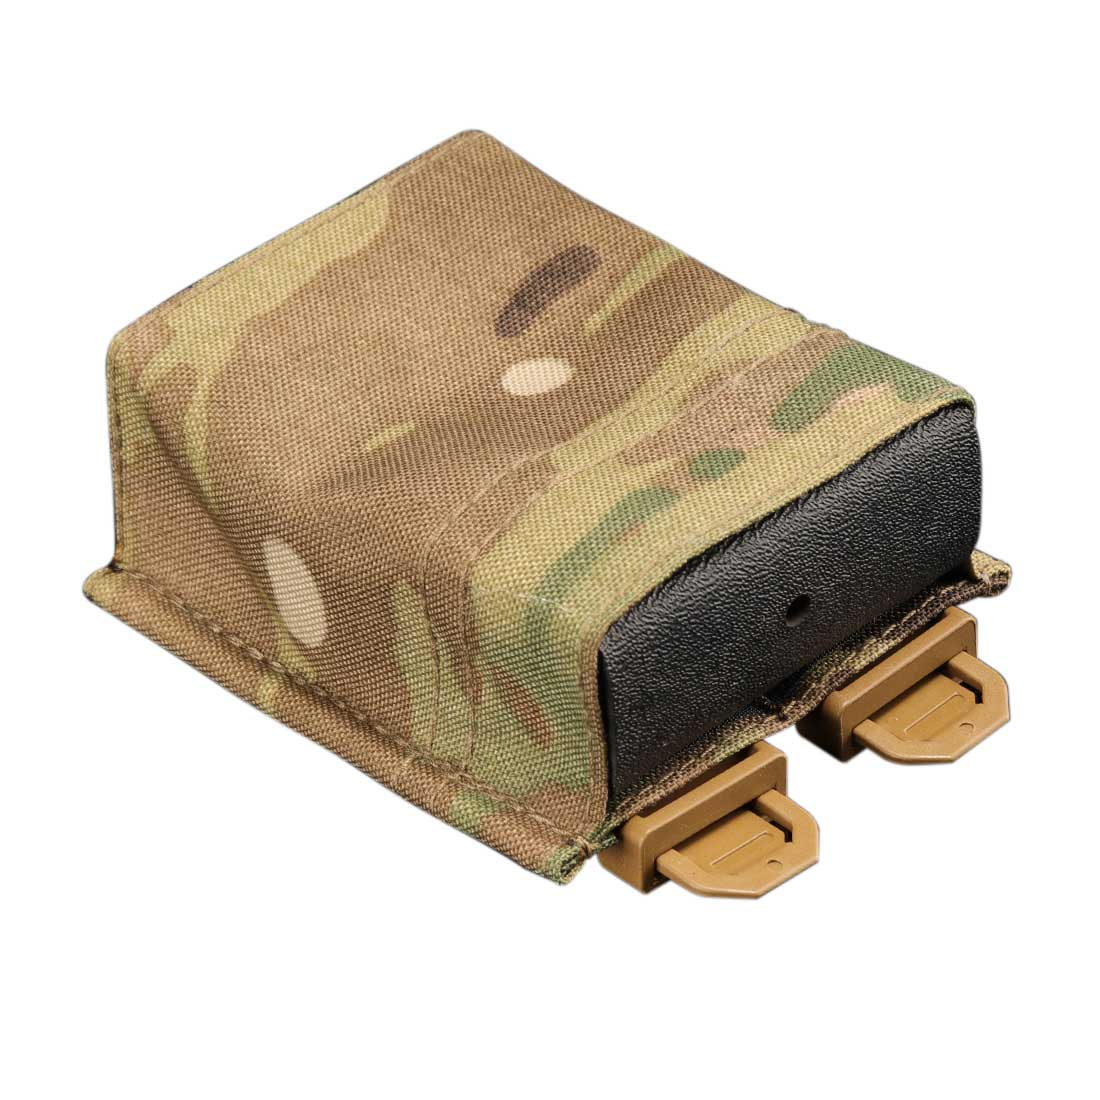 RELOADED KYWI  Kydex Wedge Insert Single Rifle Mag Pouch